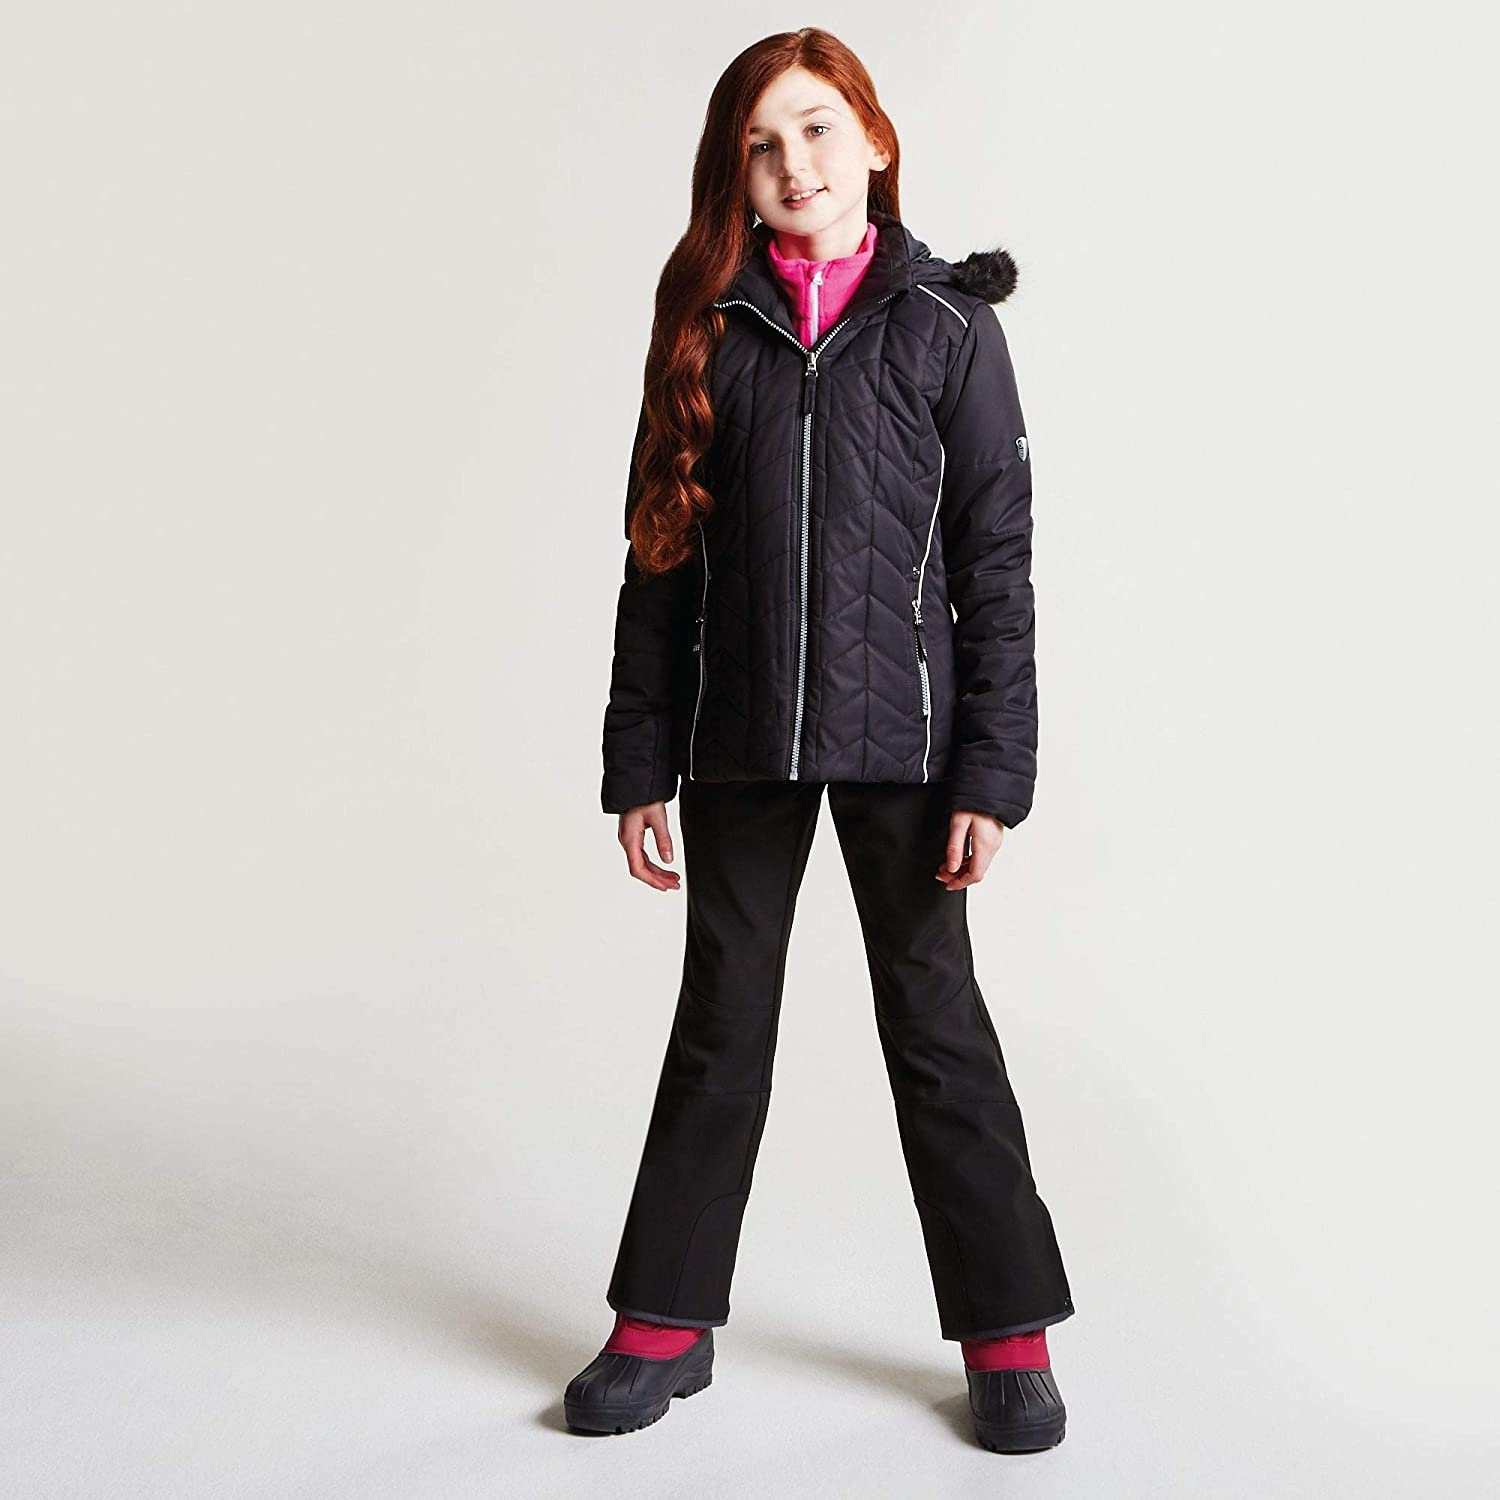 b94523d84499 Dare 2b Children s Prodigal and Breathable Girls Ski Waterproof ...